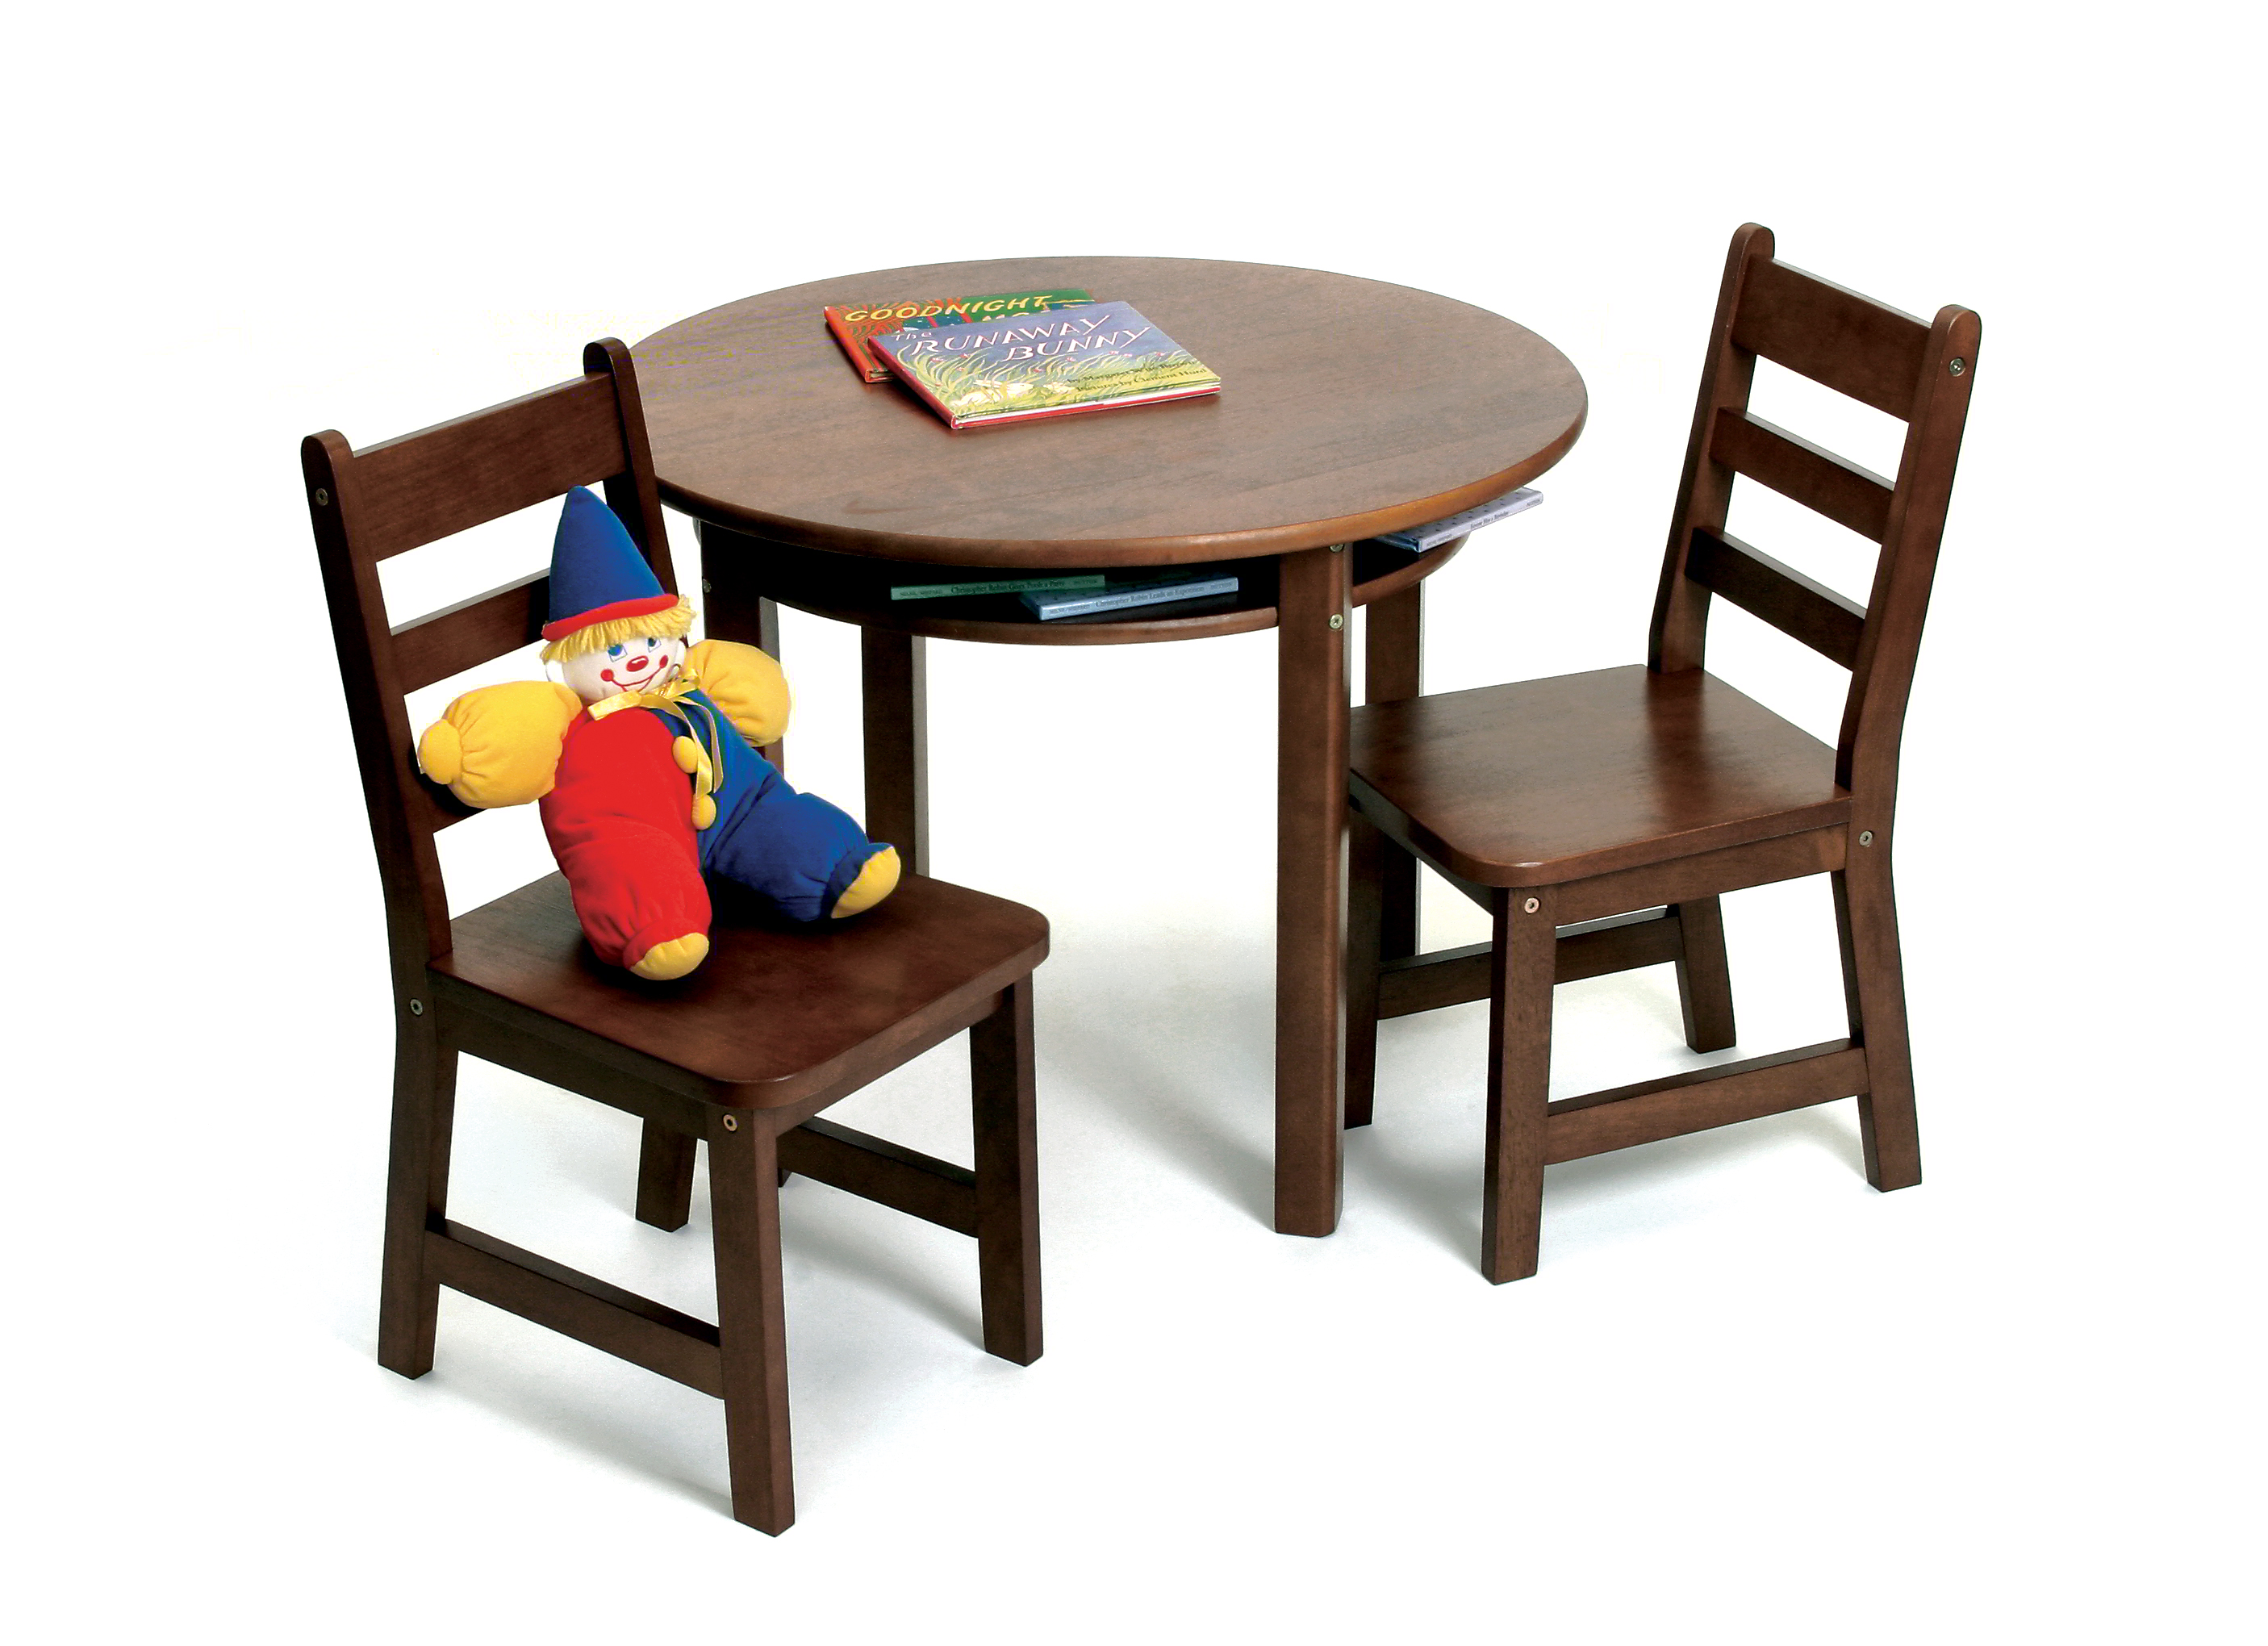 Child s Round Table with Shelf & 2 Chairs Walnut Finish